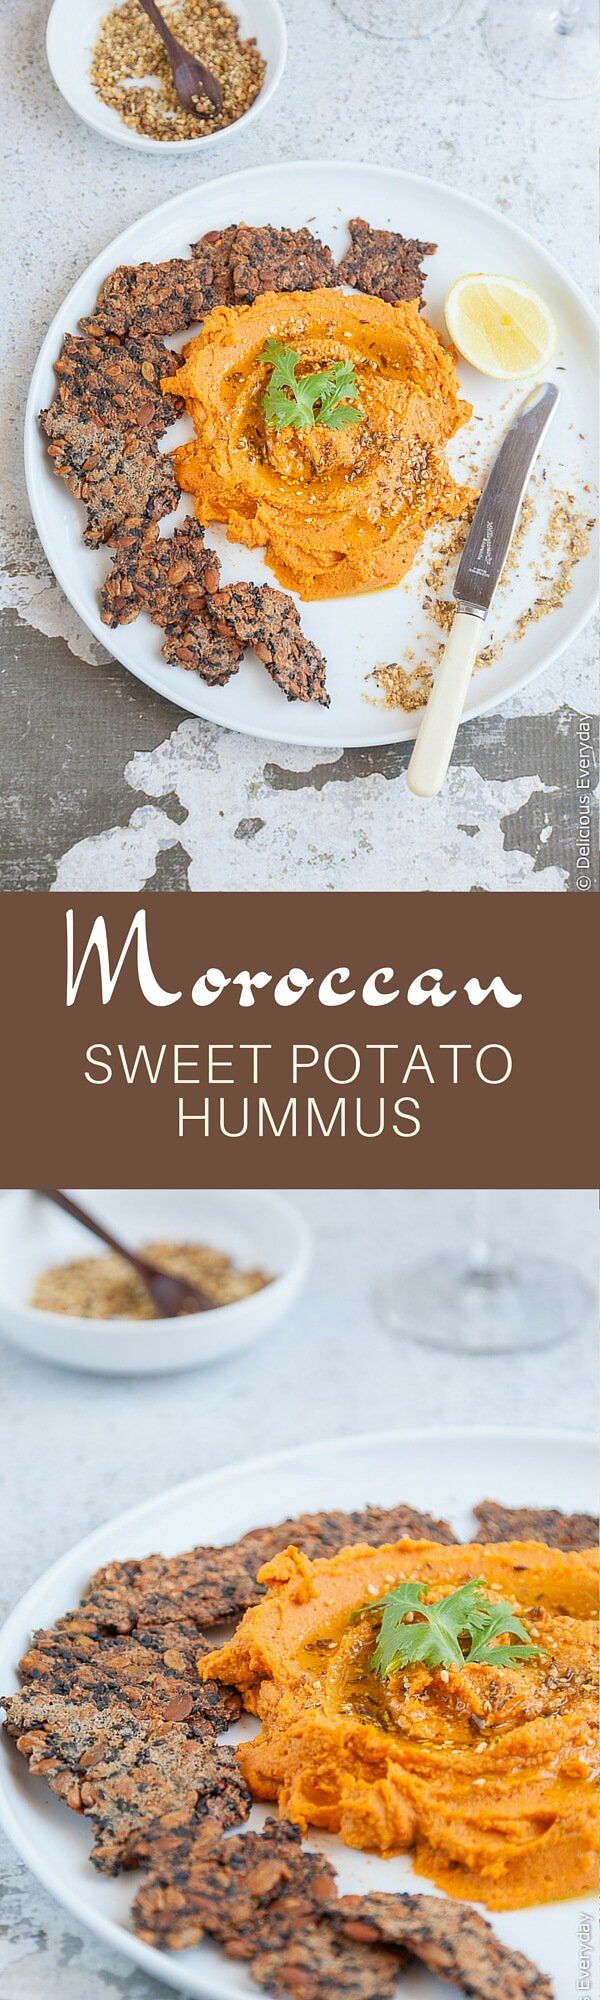 Moroccan Sweet Potato Hummus